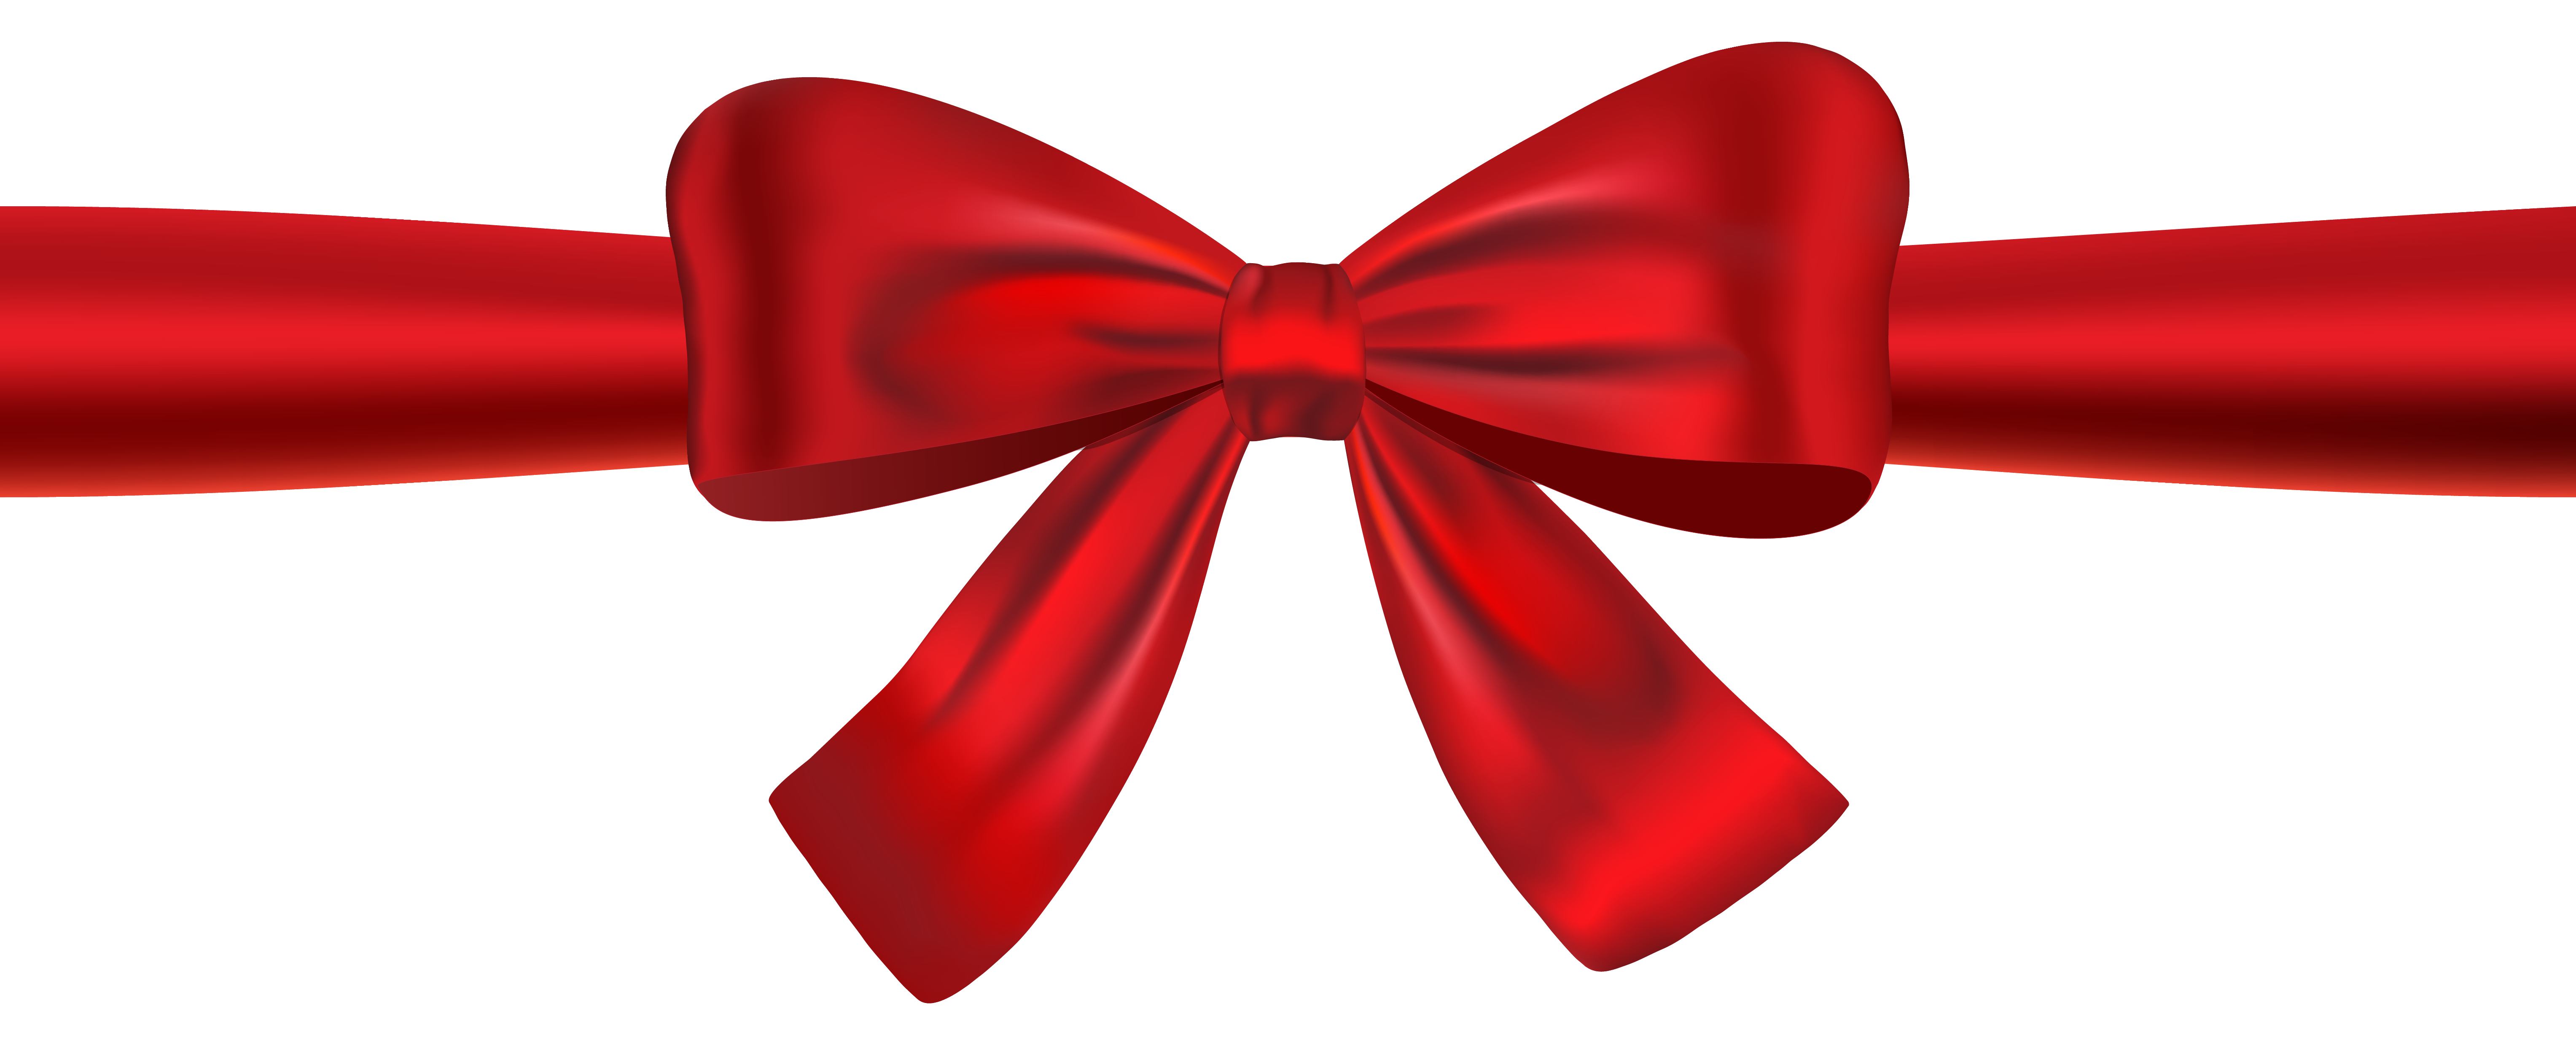 Red ribbon and bow clipart .-Red ribbon and bow clipart .-6